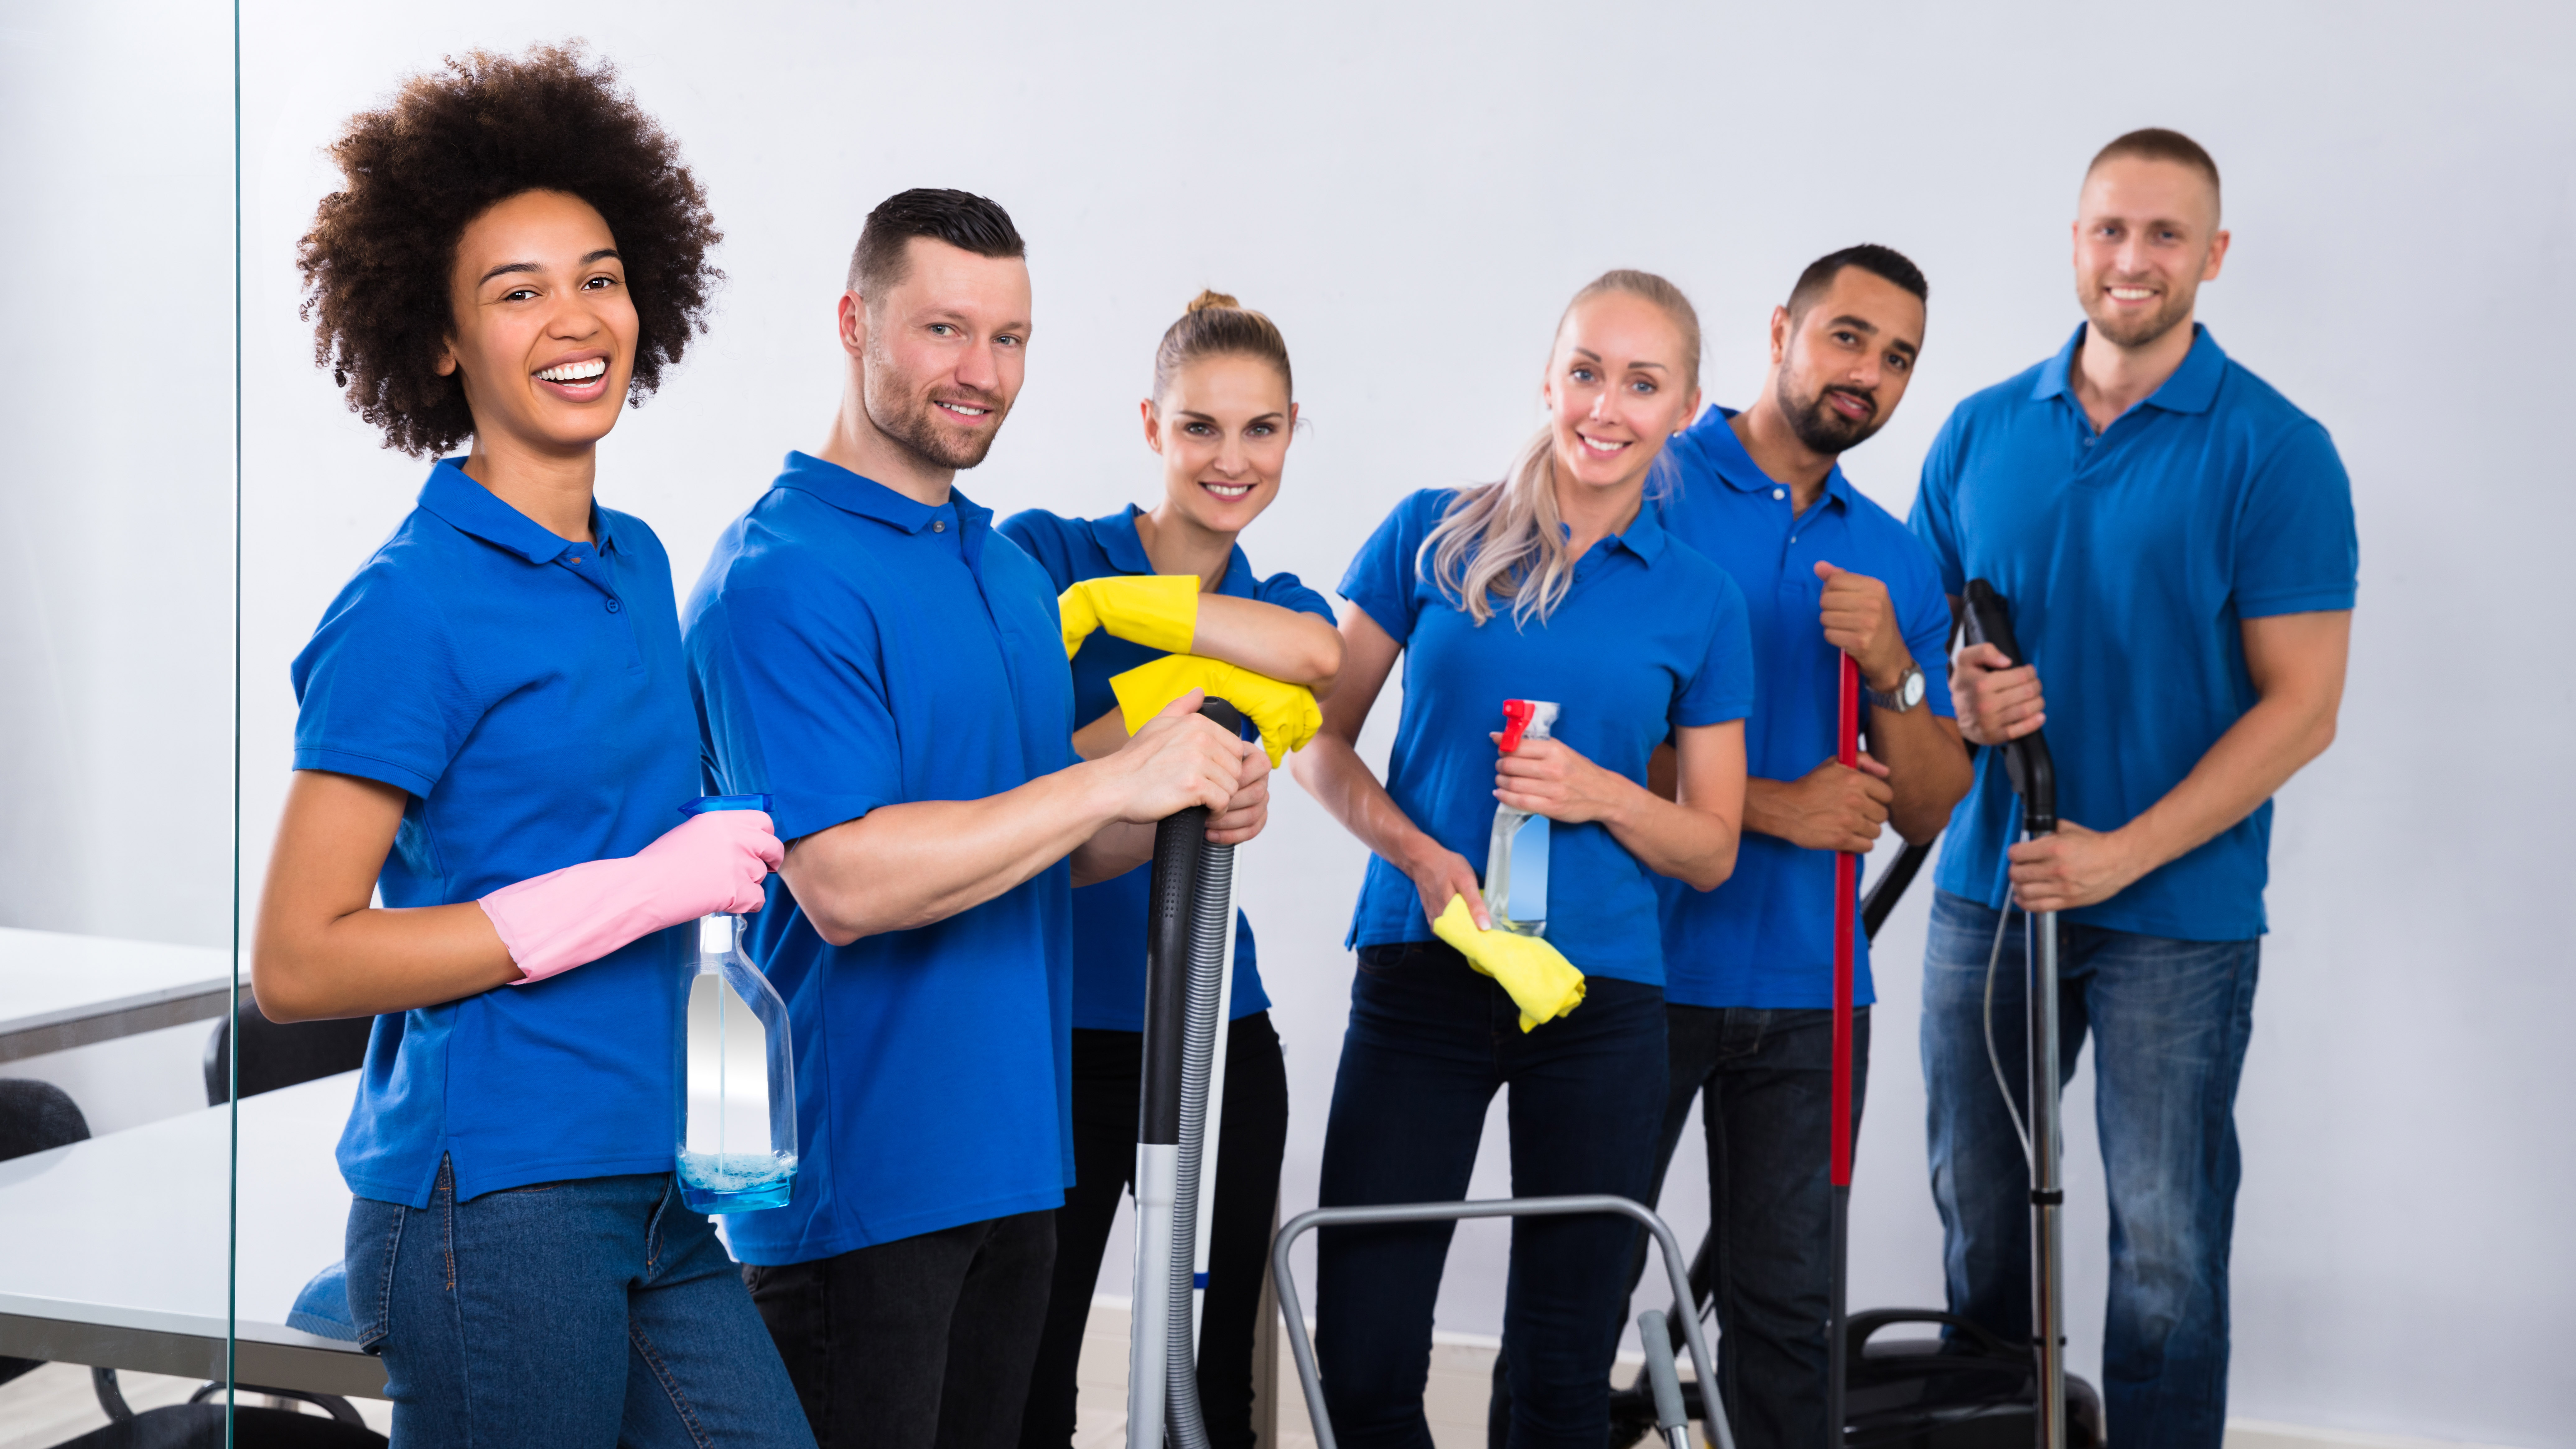 Team Cleaning - Master Class Commercial Cleaning